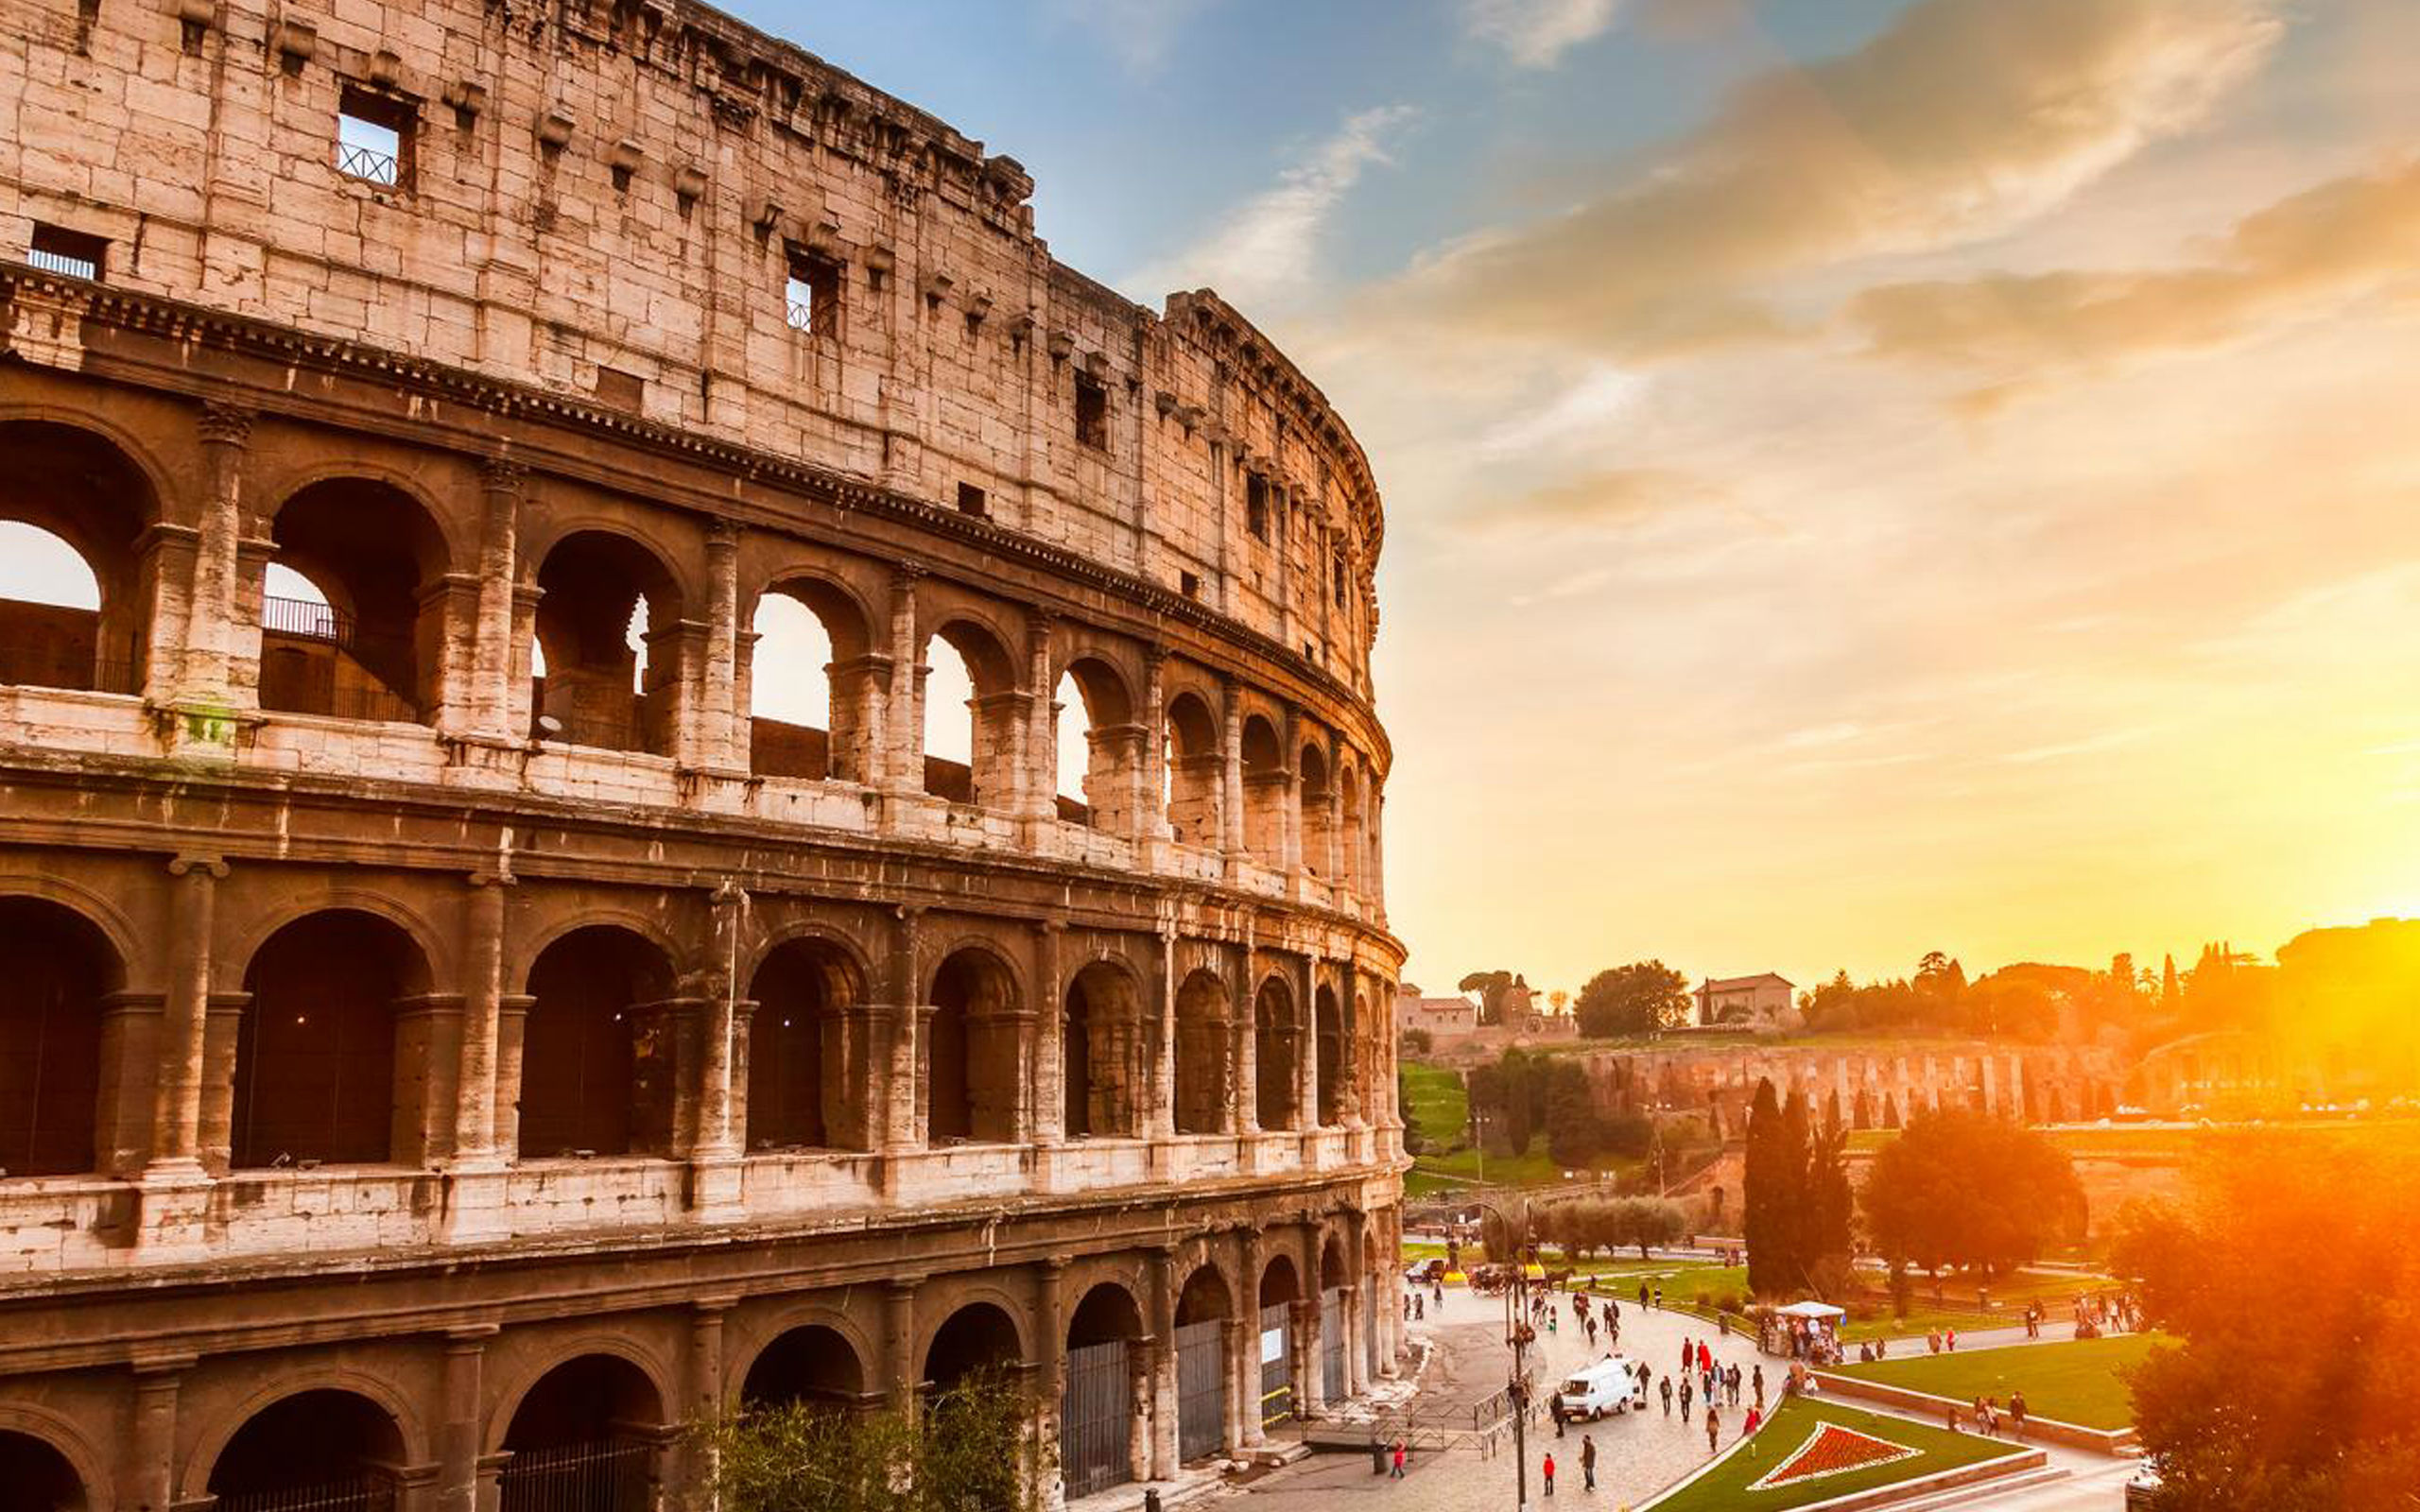 colosseum of rome picture history and facts images download